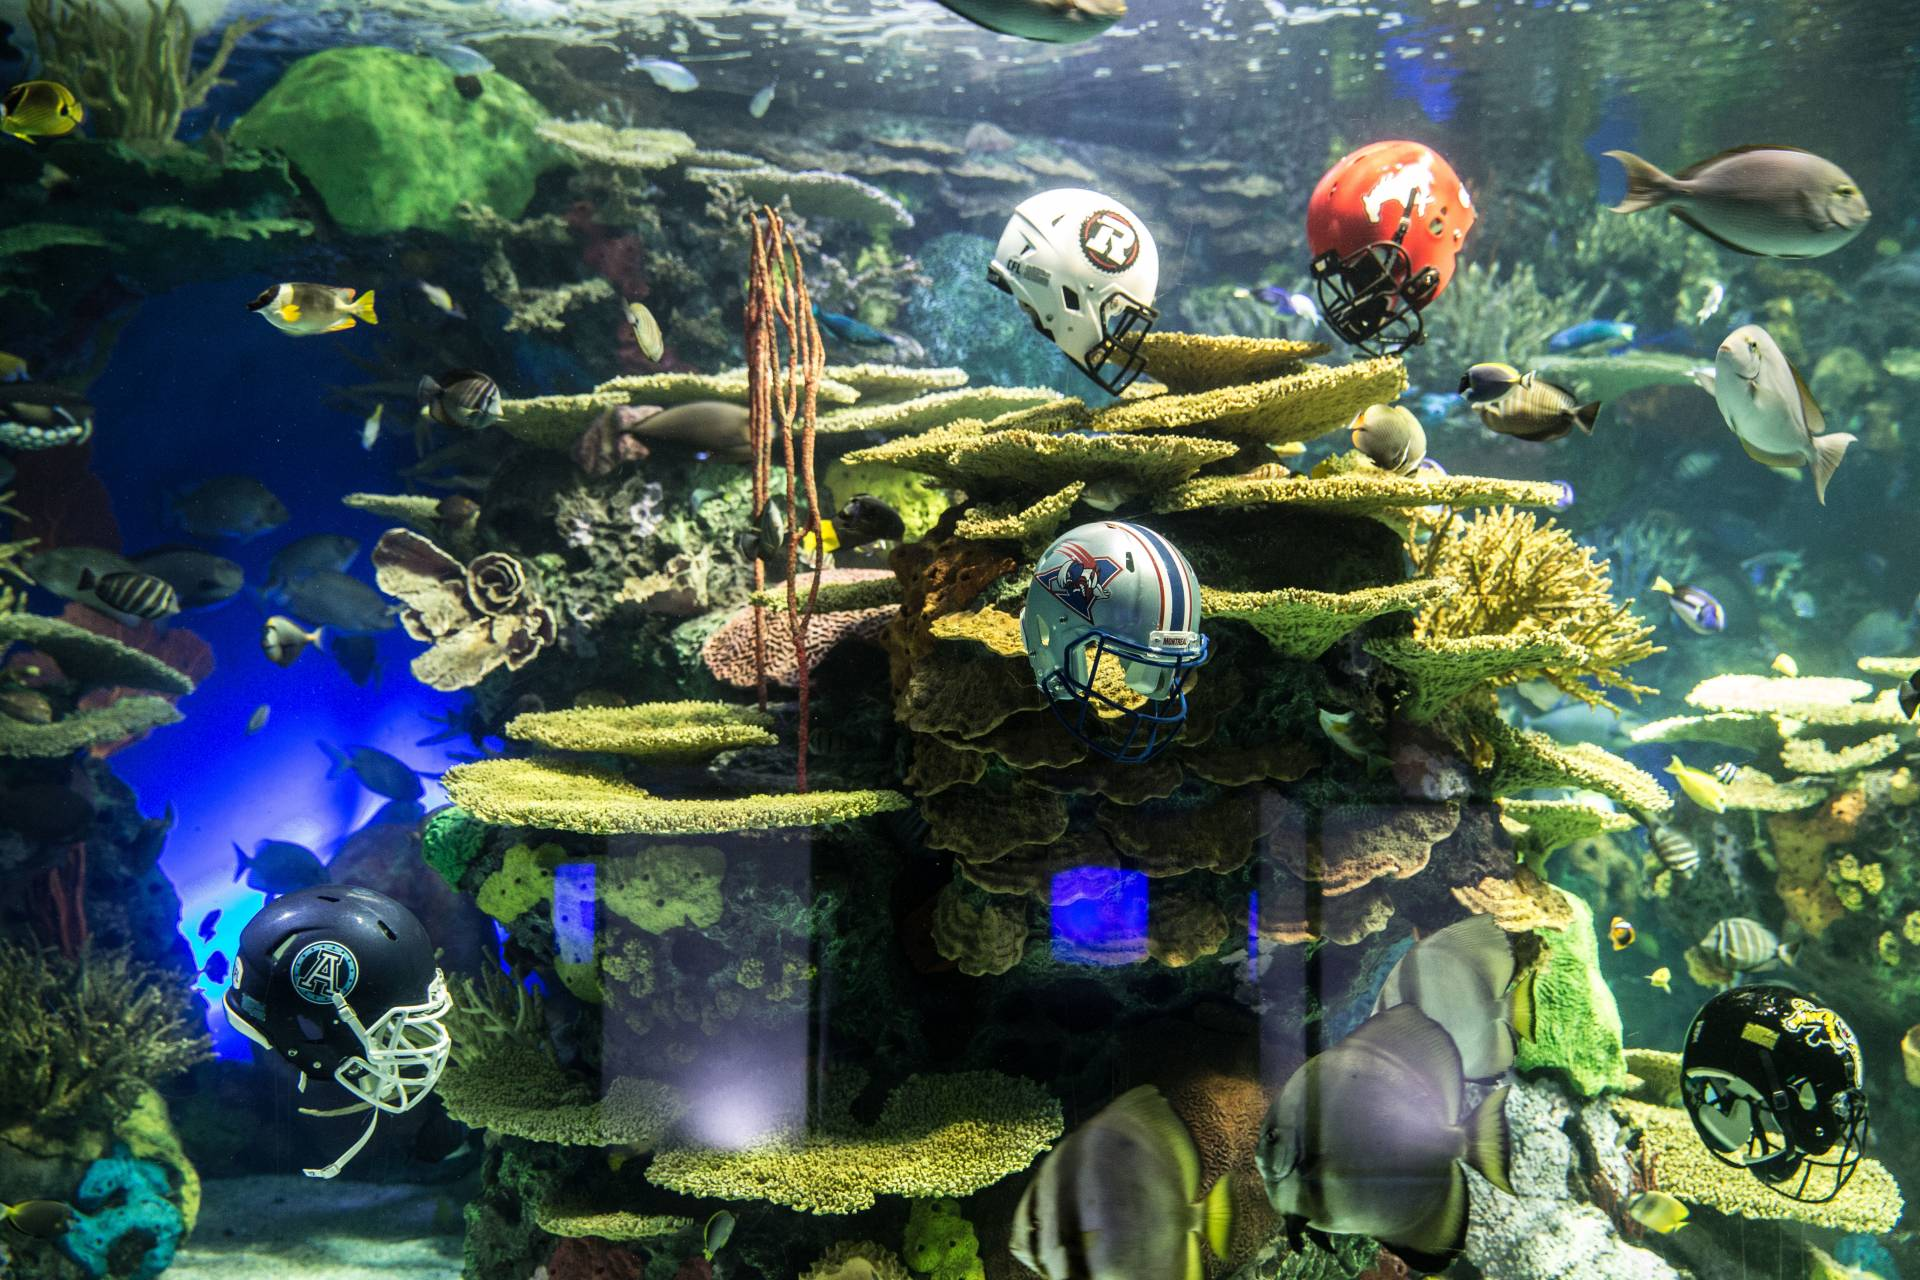 Football helmets submerged in tanks around aquarium